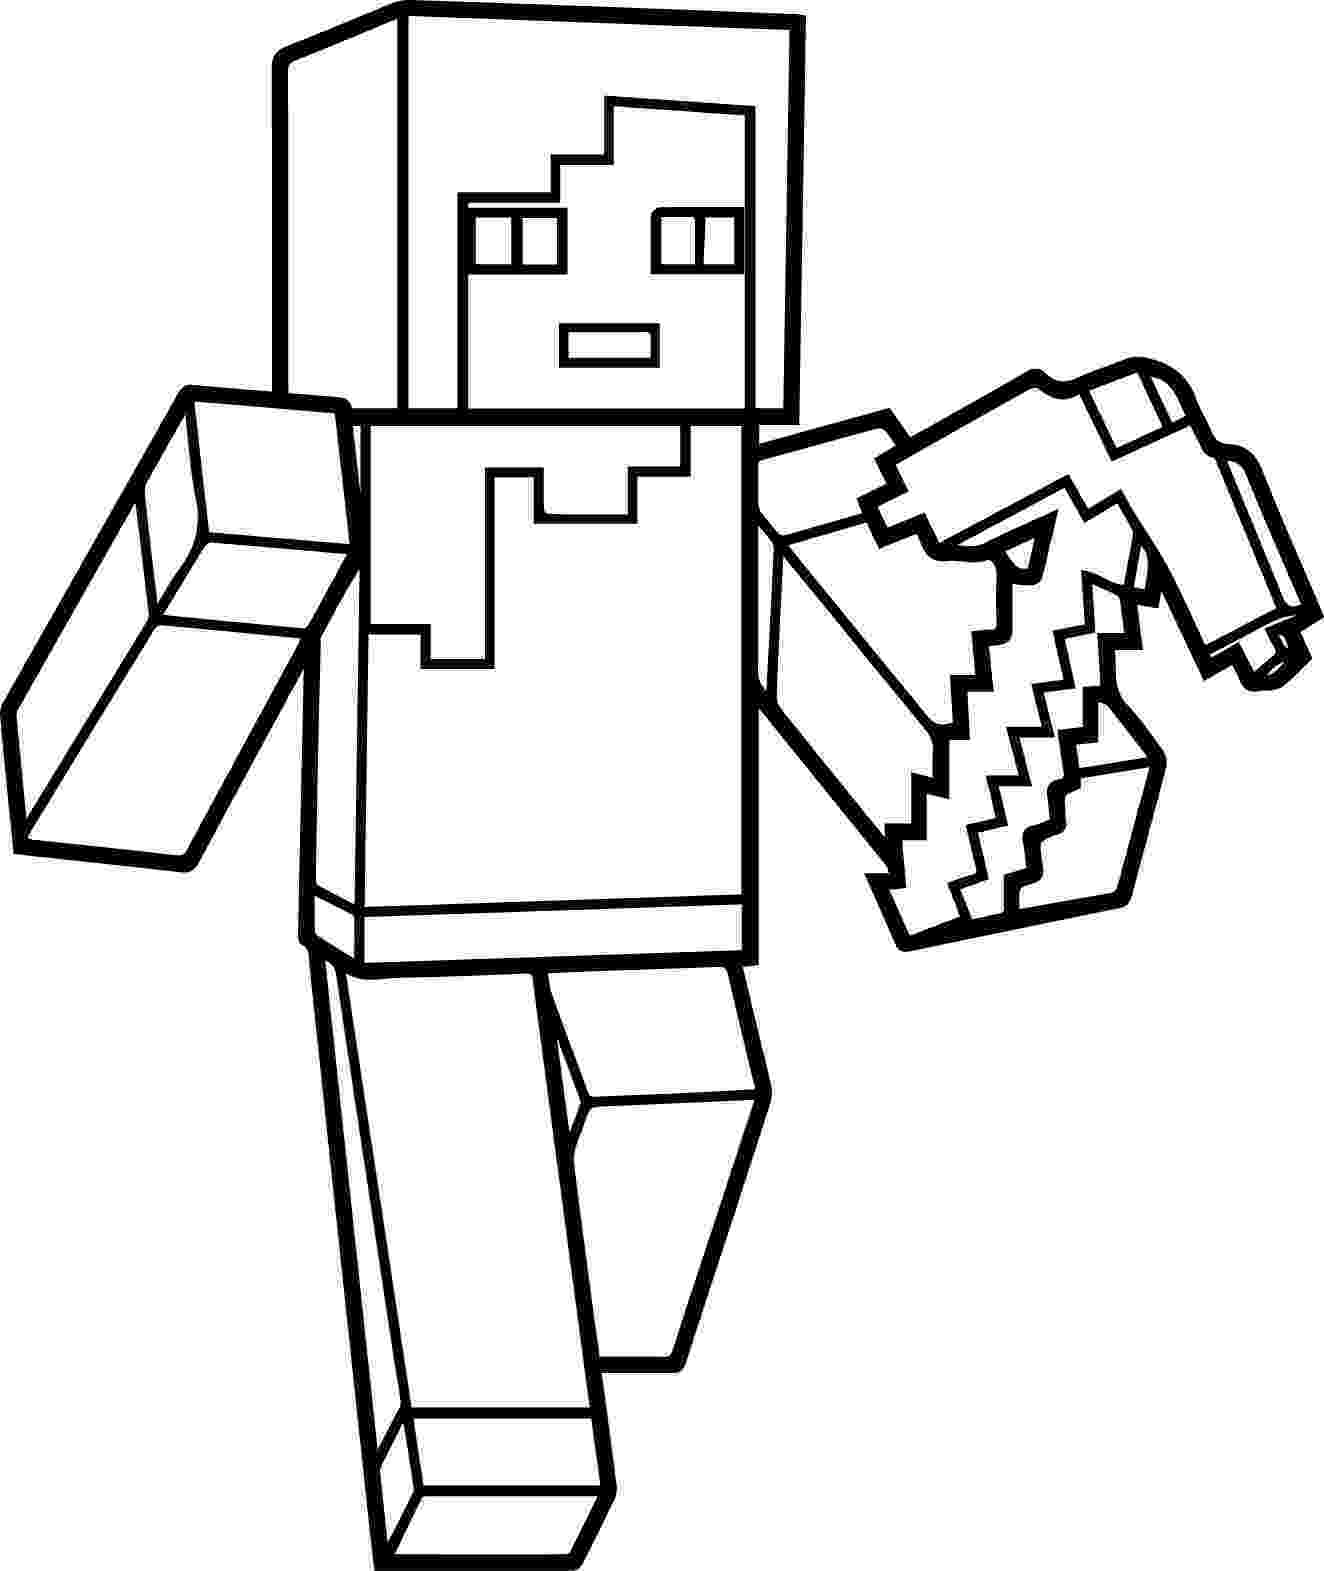 minecraft color pictures minecraft coloring pages best coloring pages for kids color minecraft pictures 1 1